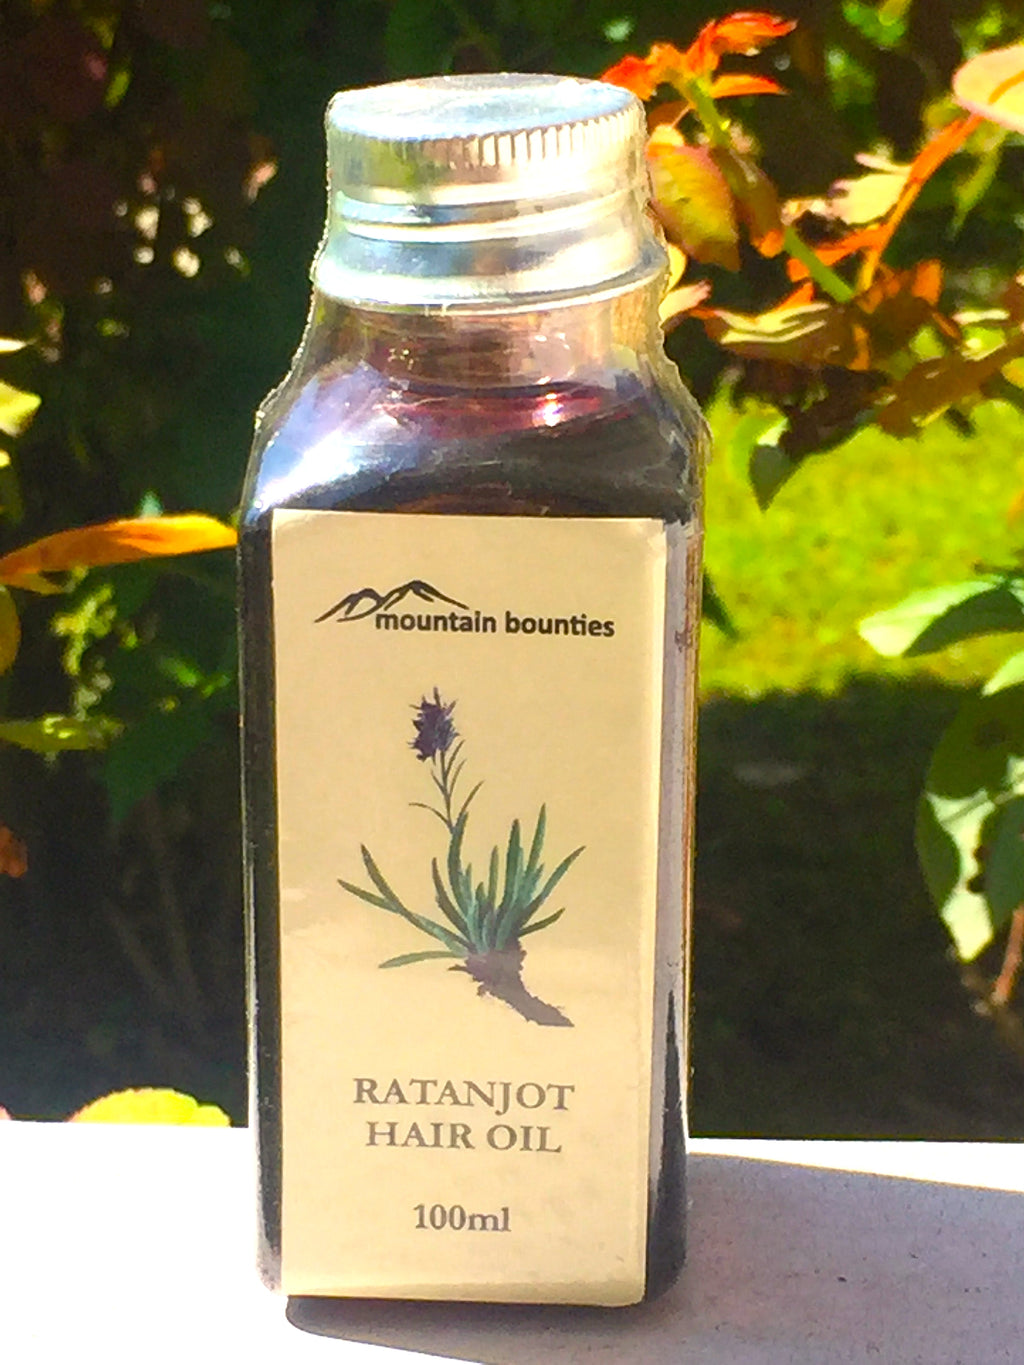 Ratanjot oil, Natural oil, Skin Care, Himachal Oils, Himalayan Salt, Mountain Bounties, Himalayan people Care, Essential oils, Cold Pressed oils, Moisturising oils, Moisturising creams